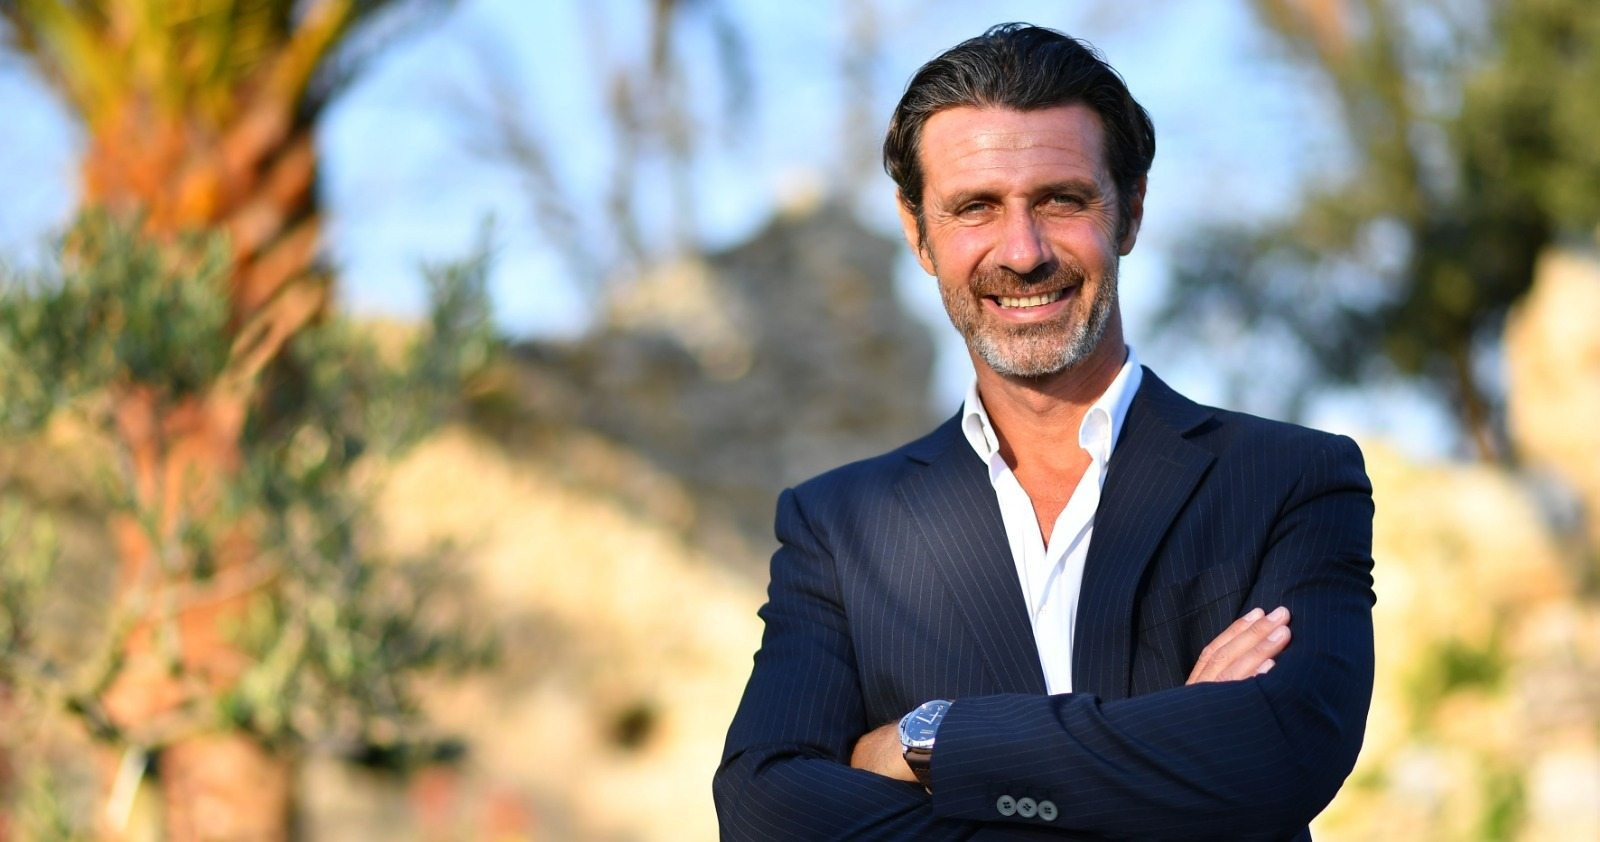 French coach Patrick Mouratoglou founded his Tennis Academy in 1996